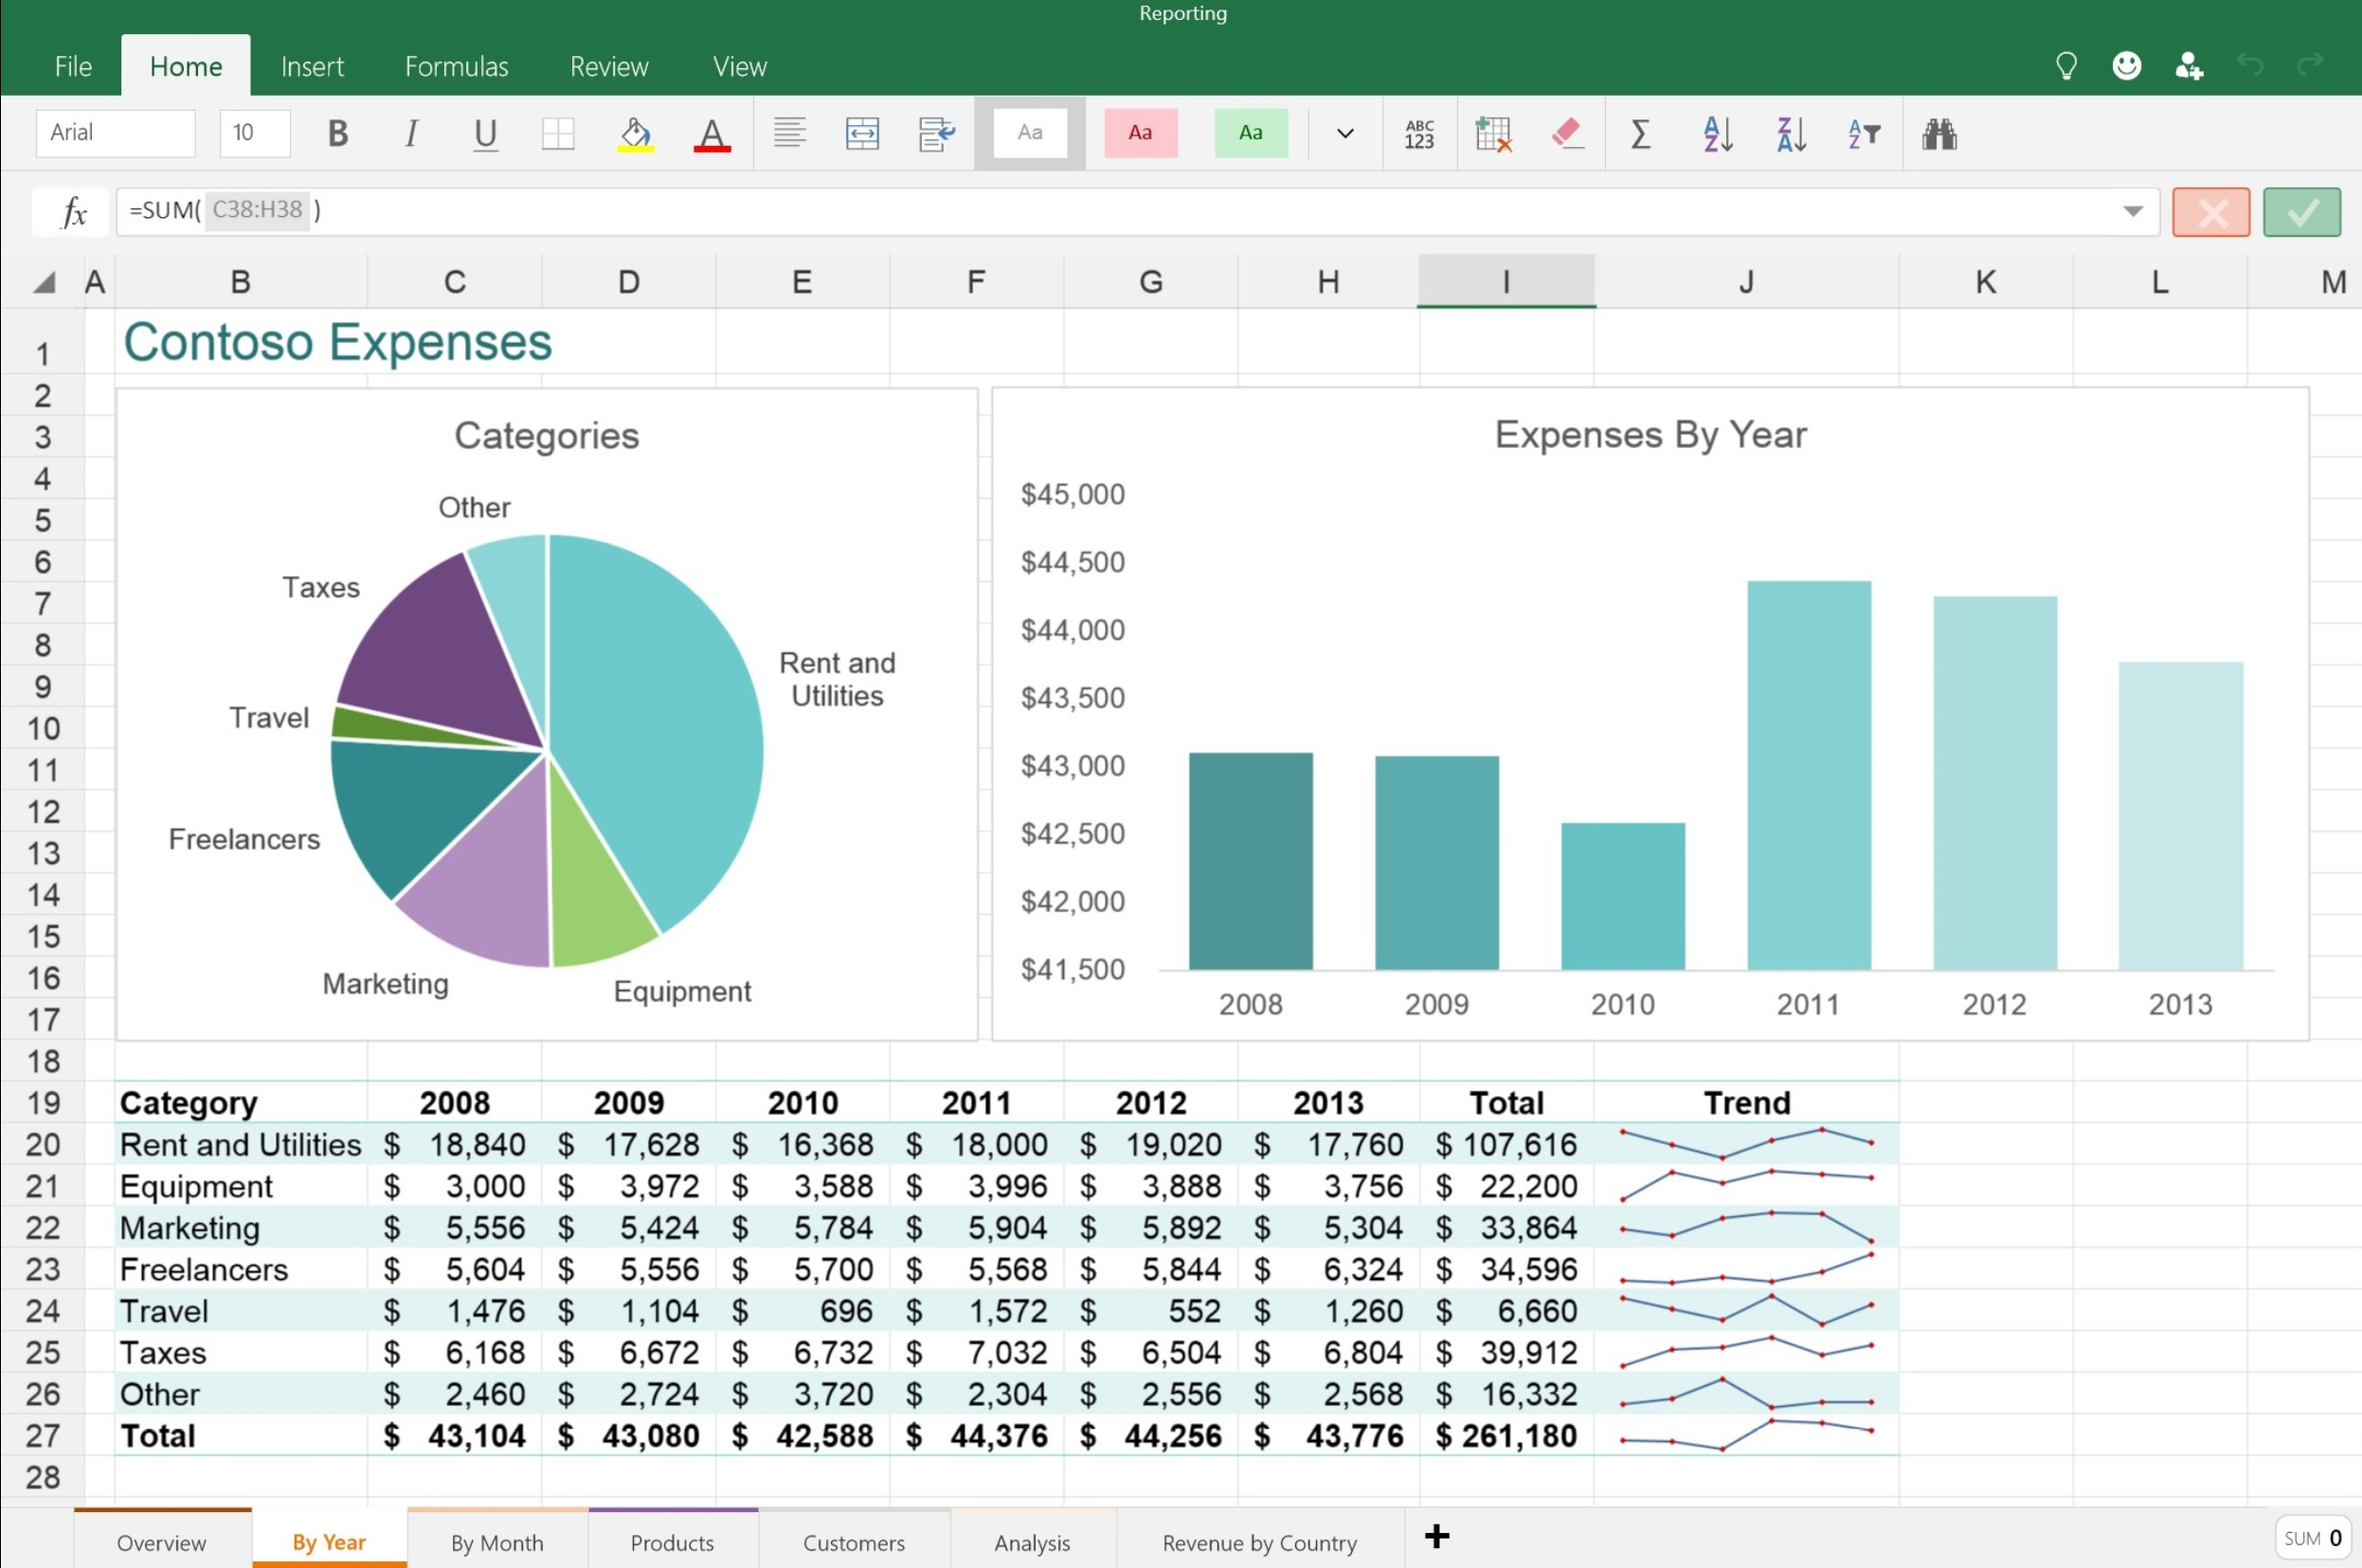 Ediblewildsus  Prepossessing Features Available In The New Word Excel And Powerpoint Apps For  With Goodlooking Excel Touch App  With Delightful How To Make Pivot Tables In Excel Also How To Put Formula In Excel In Addition Lock Header In Excel And Extract Month From Date In Excel As Well As Exp In Excel Additionally How To Use Count In Excel From Mspowerusercom With Ediblewildsus  Goodlooking Features Available In The New Word Excel And Powerpoint Apps For  With Delightful Excel Touch App  And Prepossessing How To Make Pivot Tables In Excel Also How To Put Formula In Excel In Addition Lock Header In Excel From Mspowerusercom